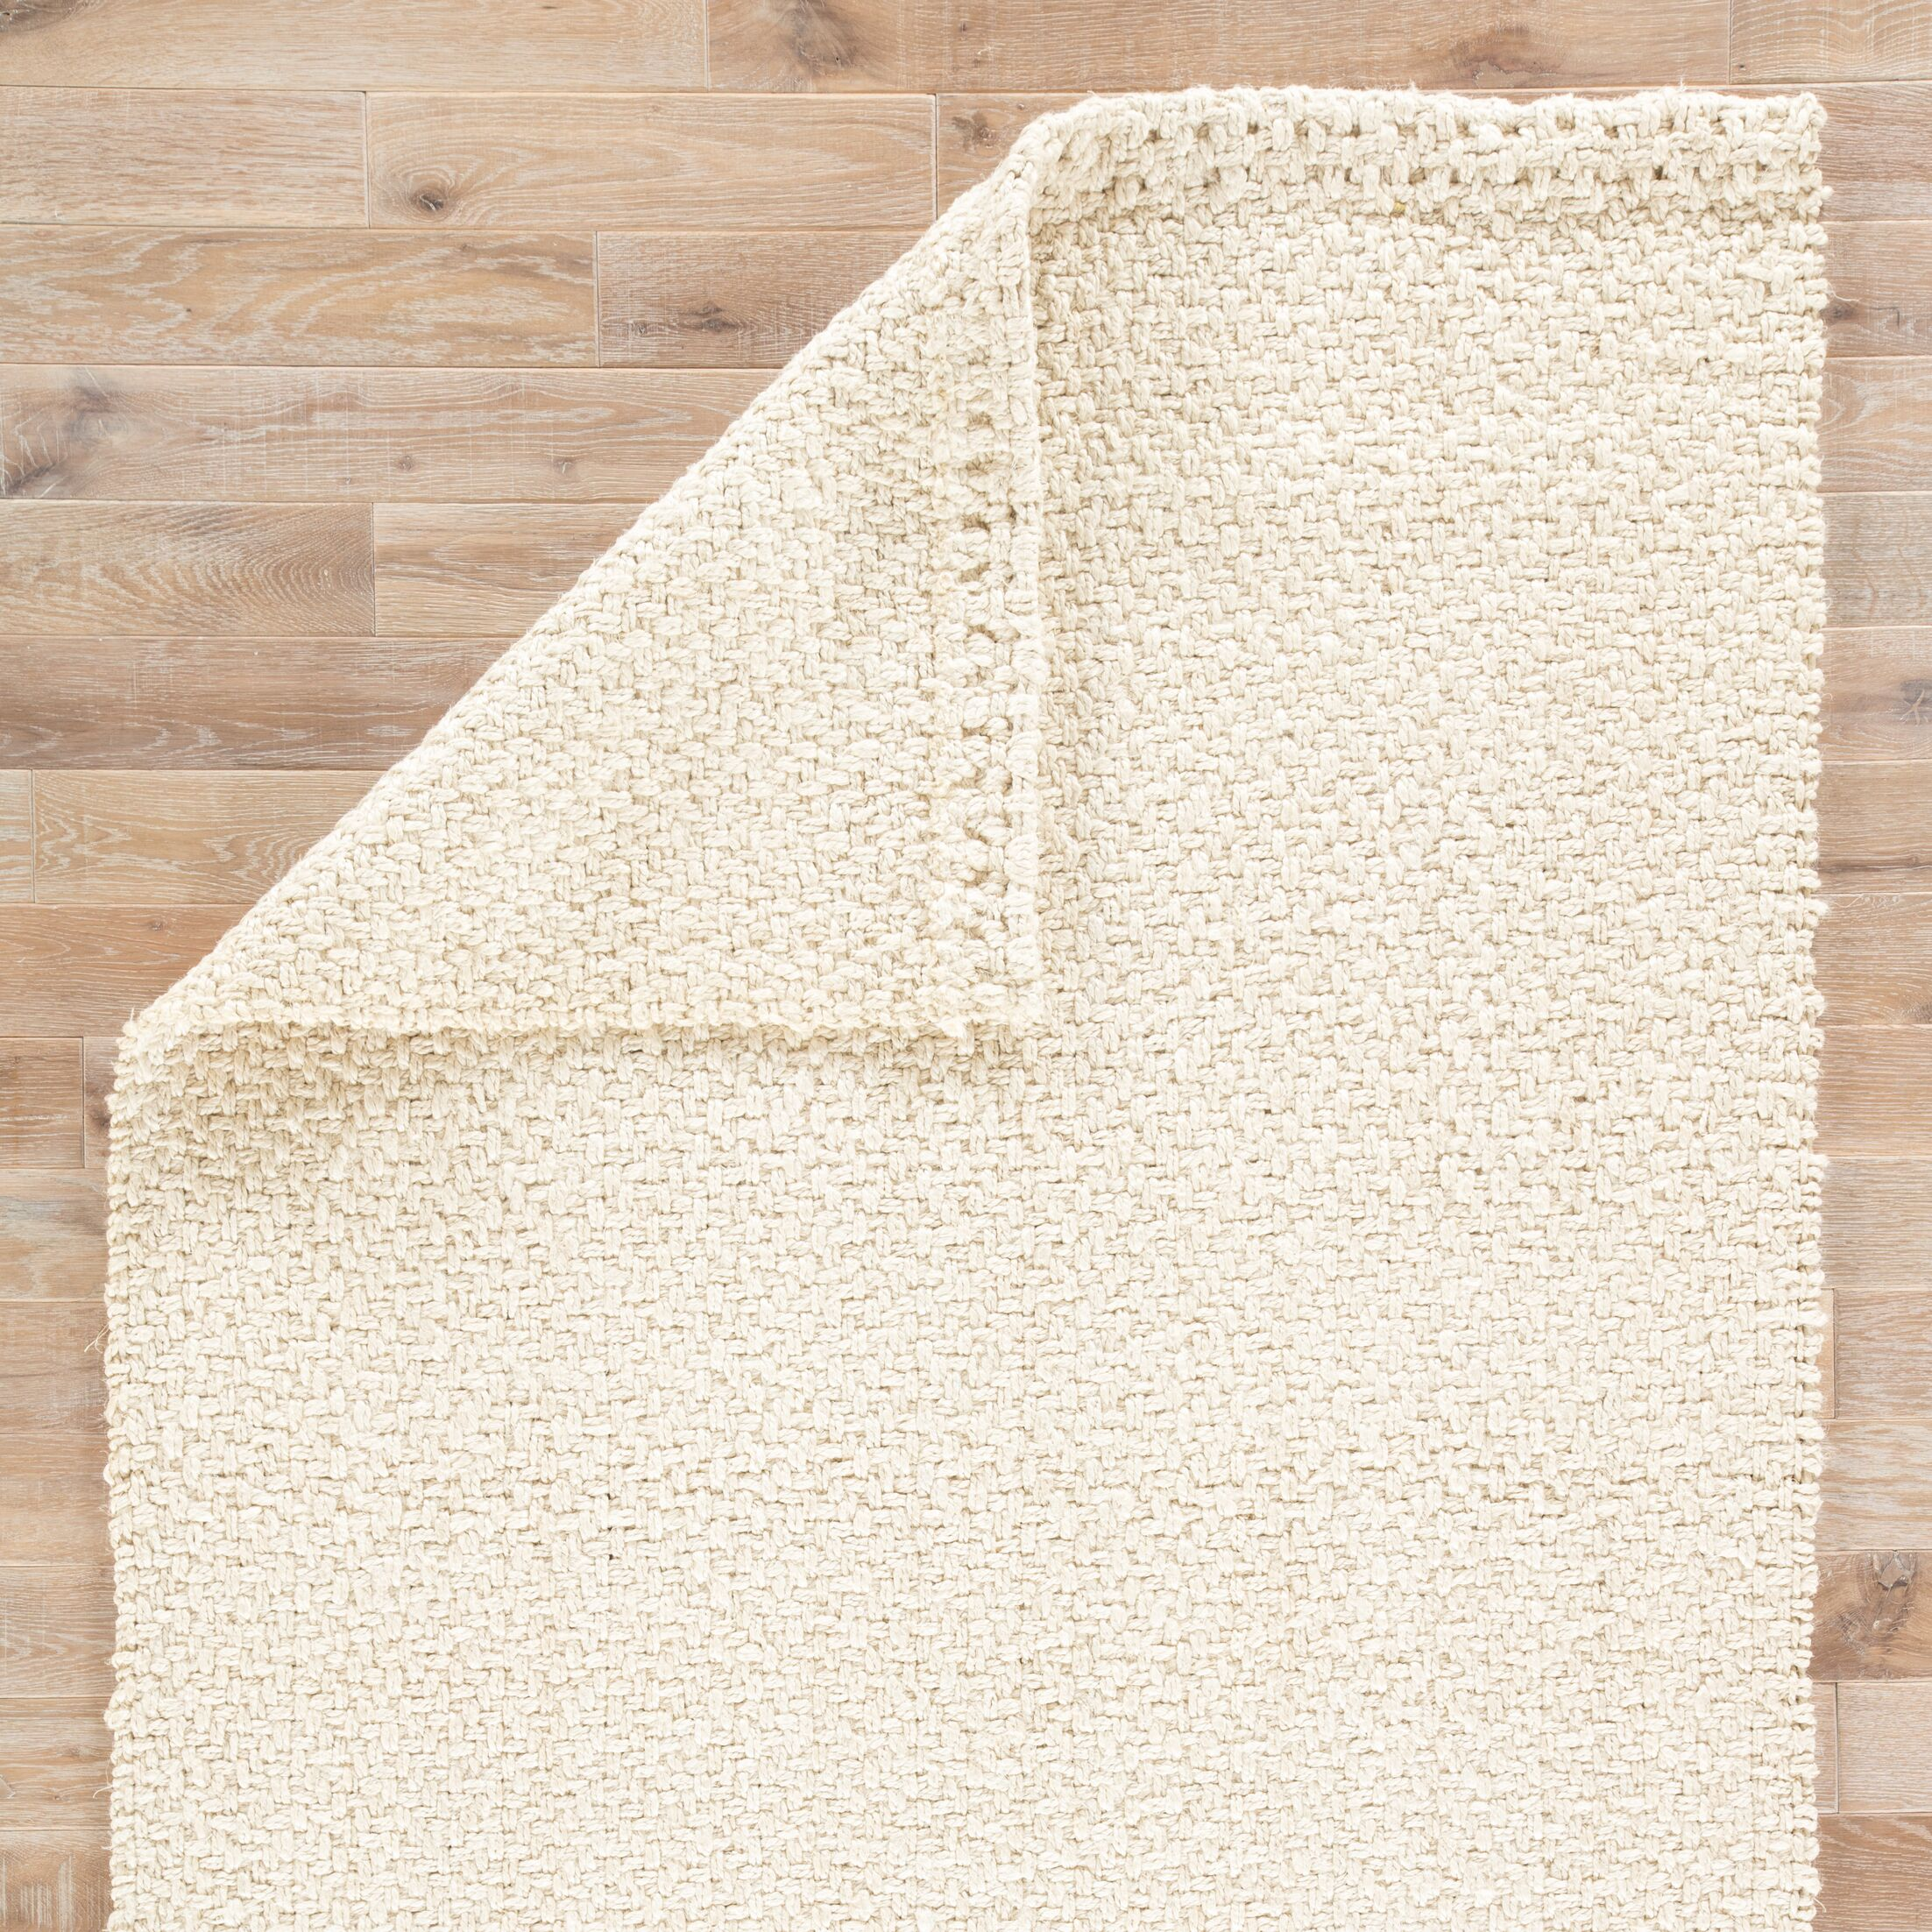 Tate Hand Woven White Area Rug Rug Size: Rectangle 10' x 14'